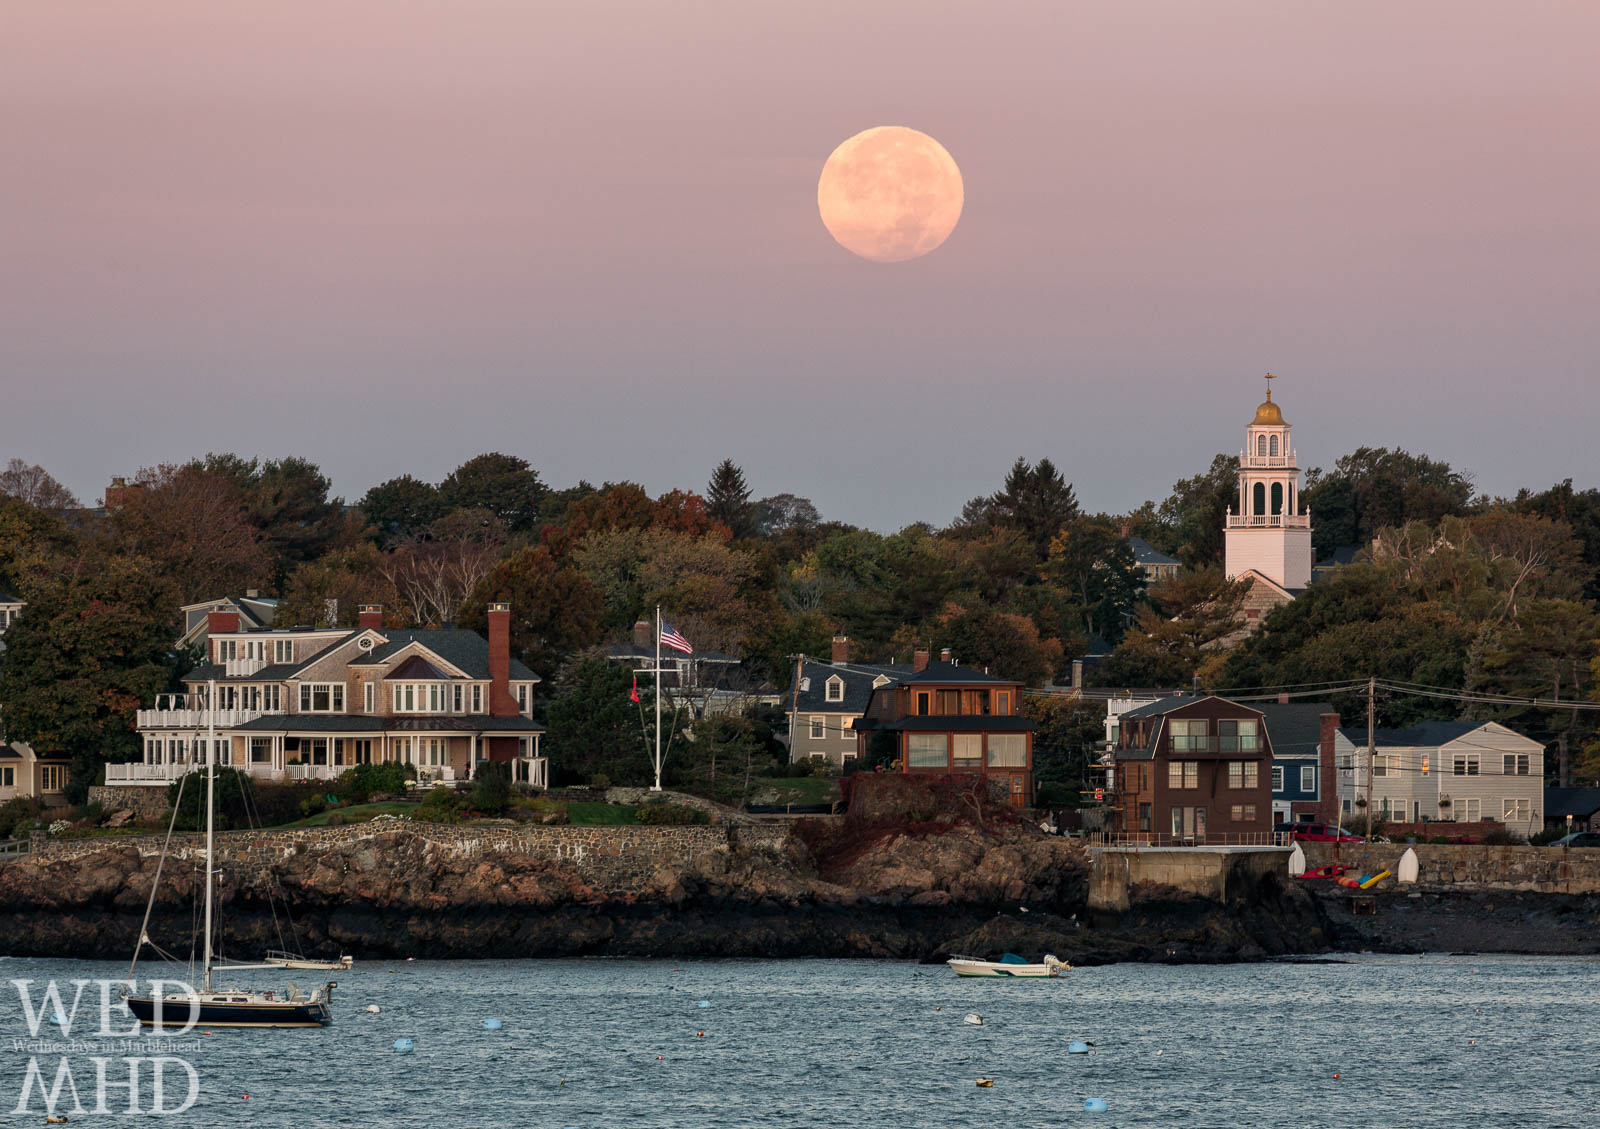 The full Hunter moon sets over Old North Church in Marblehead appearing larger than normal due to its proximity to Earth